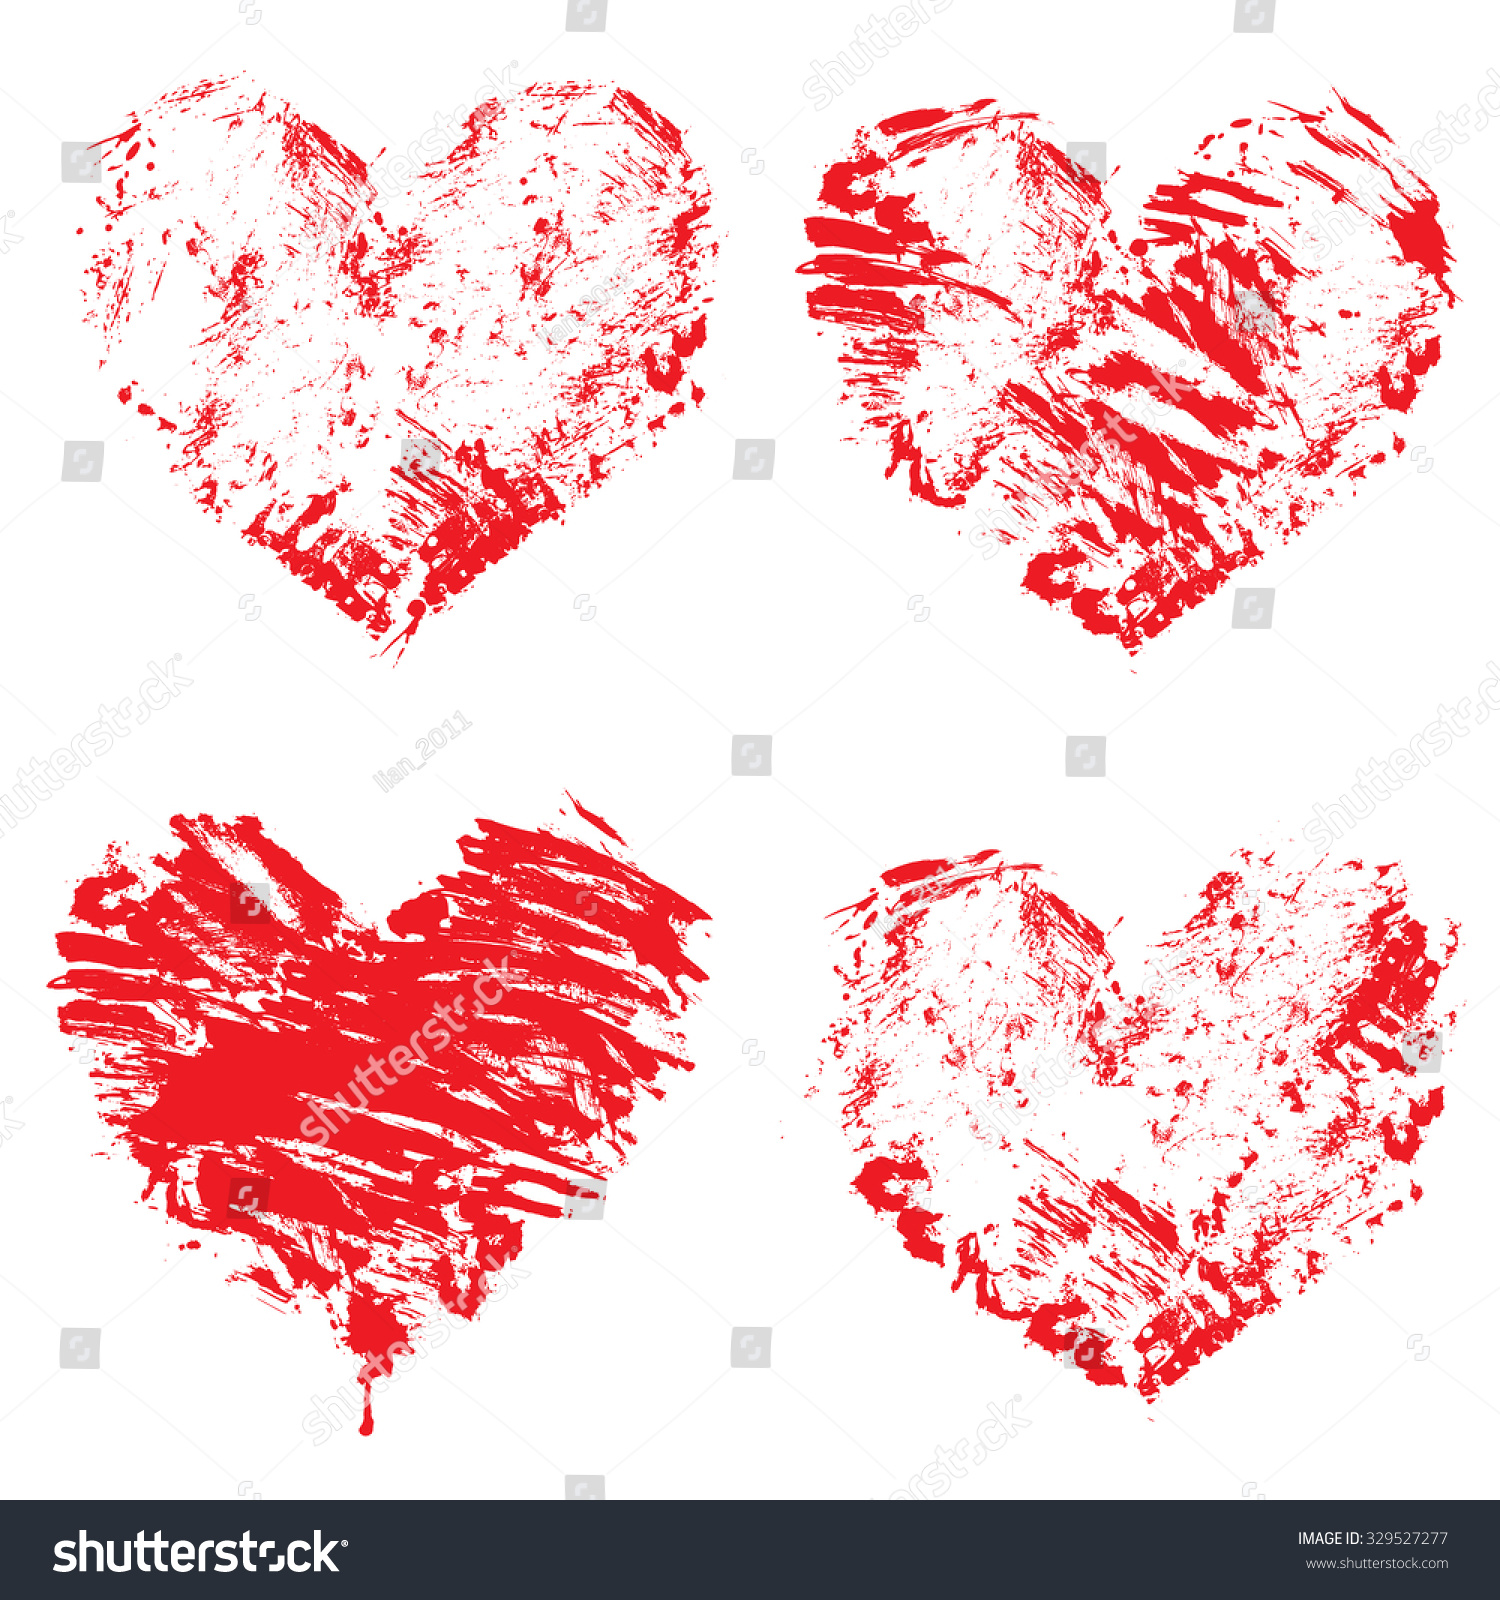 Set Grunge Red Color Figures Hearts Stock Vector (Royalty Free ...